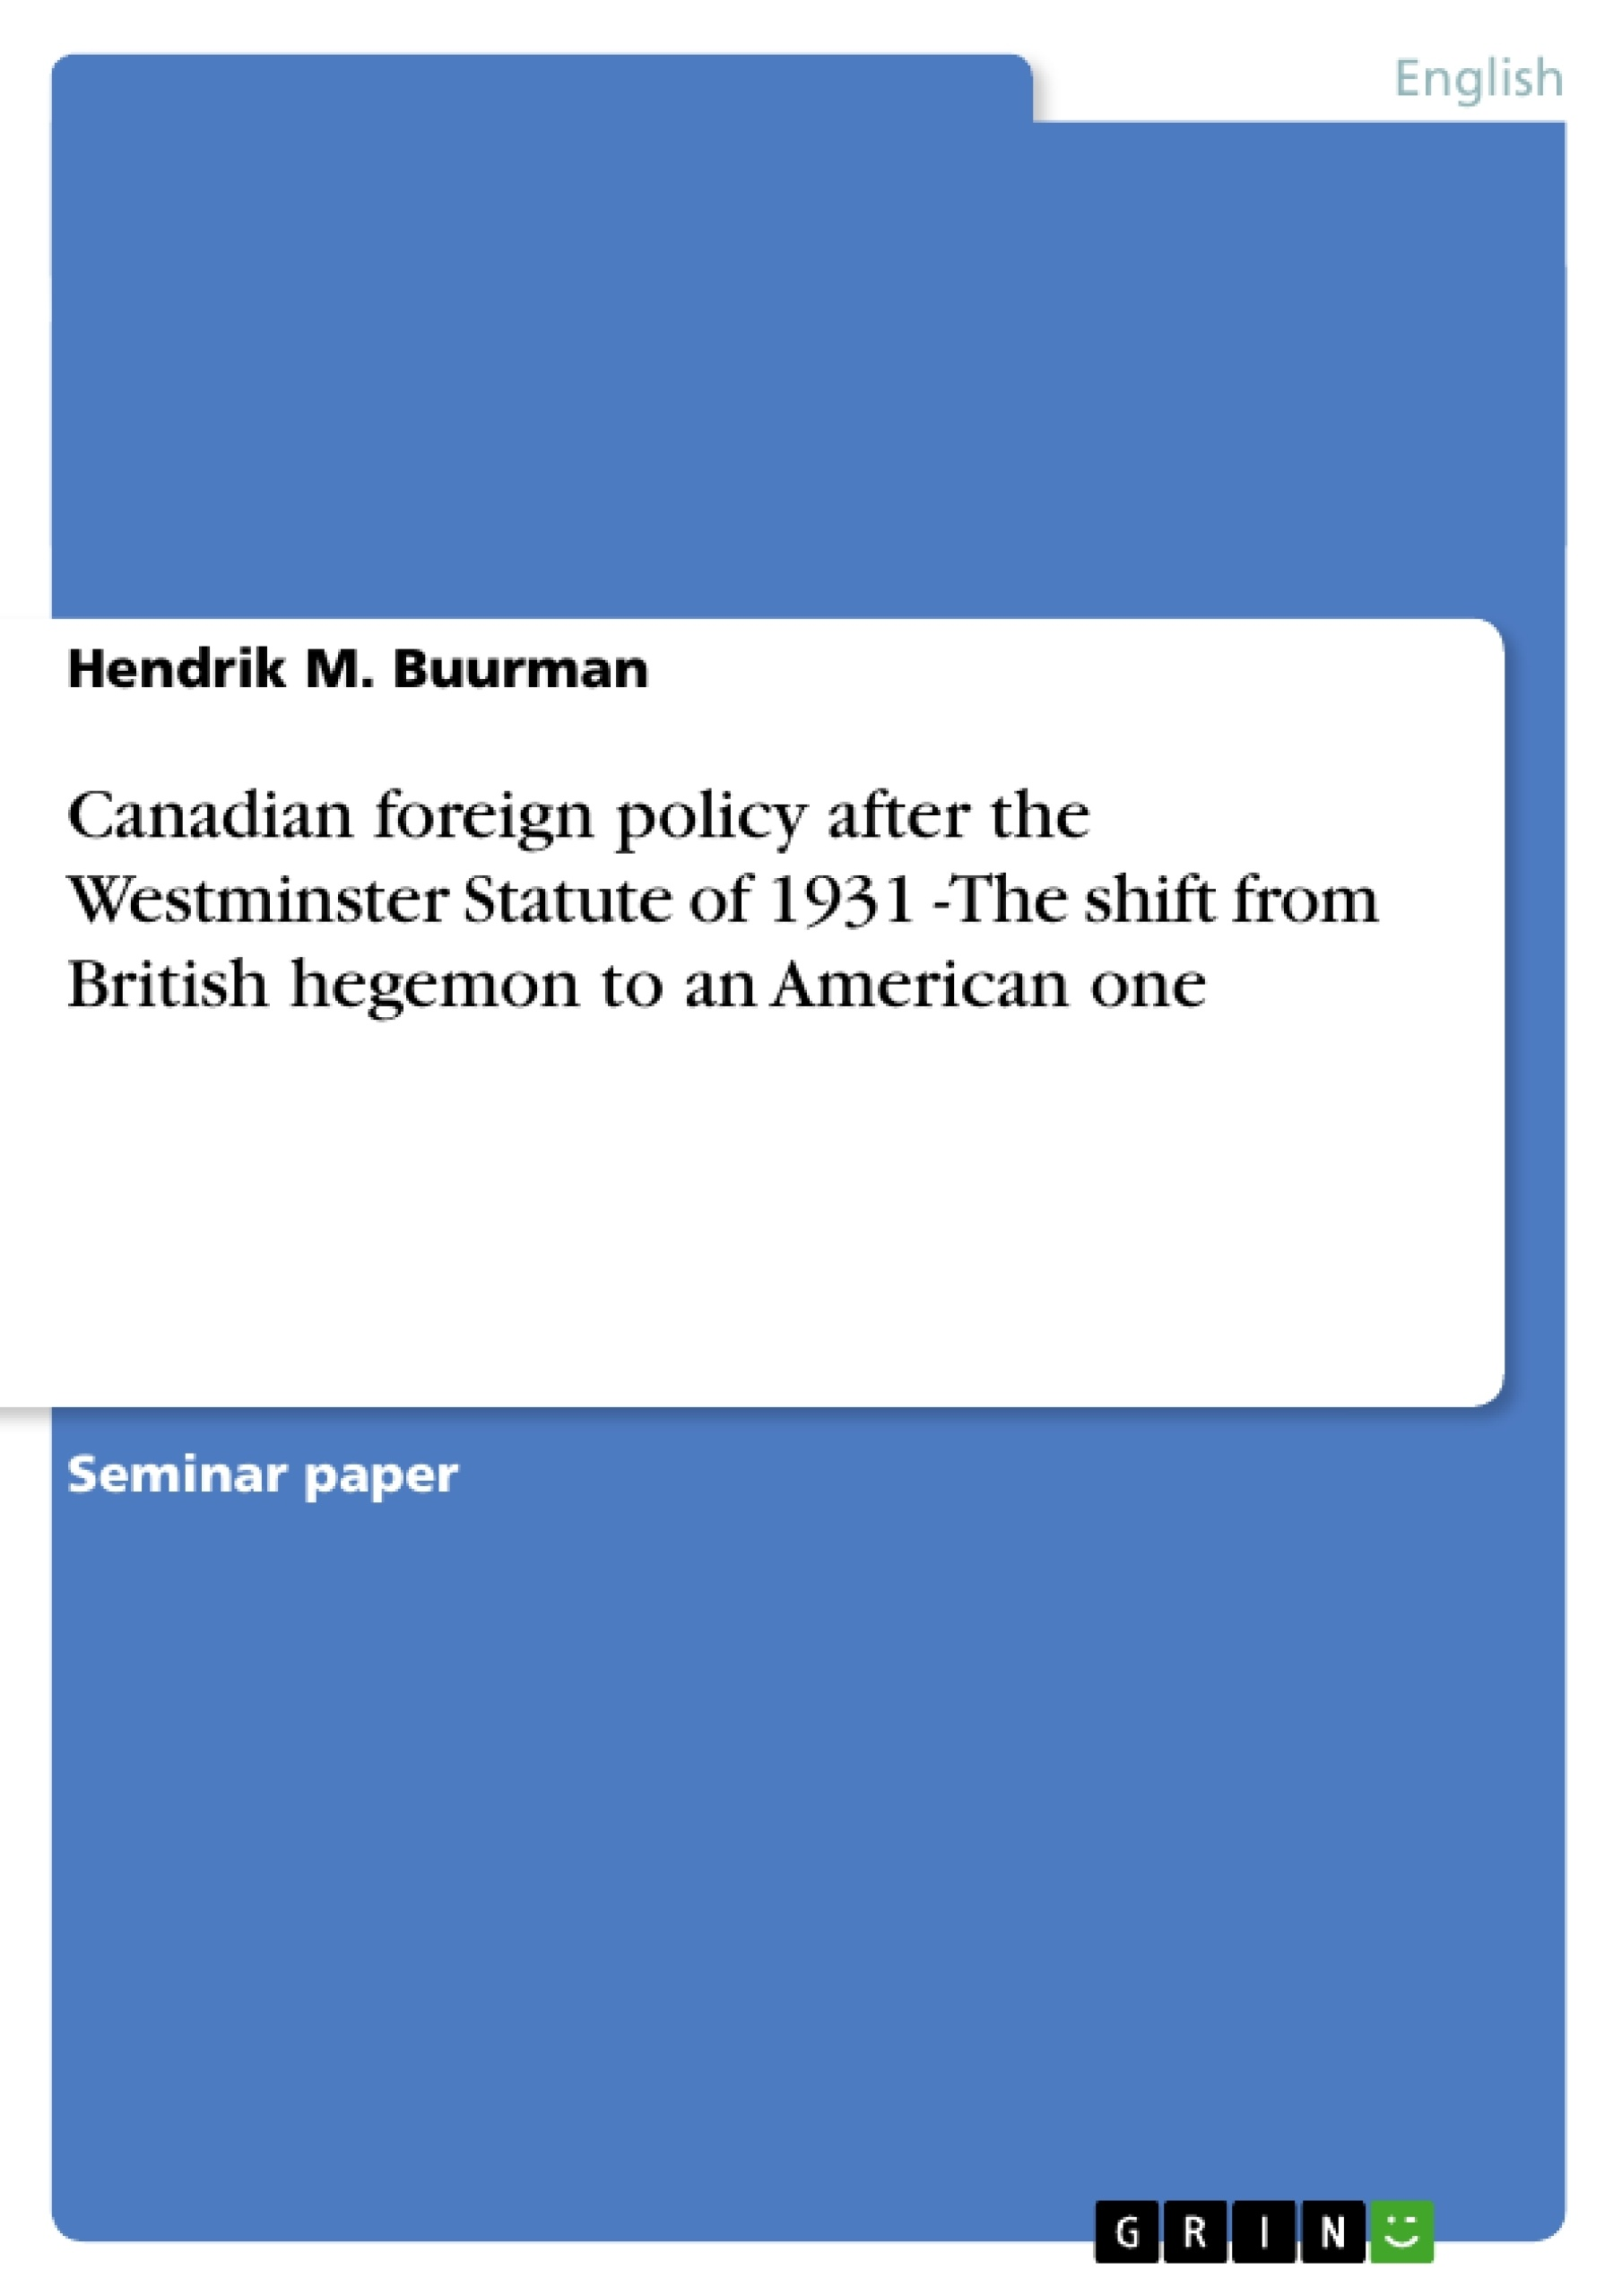 Title: Canadian foreign policy after the Westminster Statute of 1931 -The shift from British hegemon to an American one